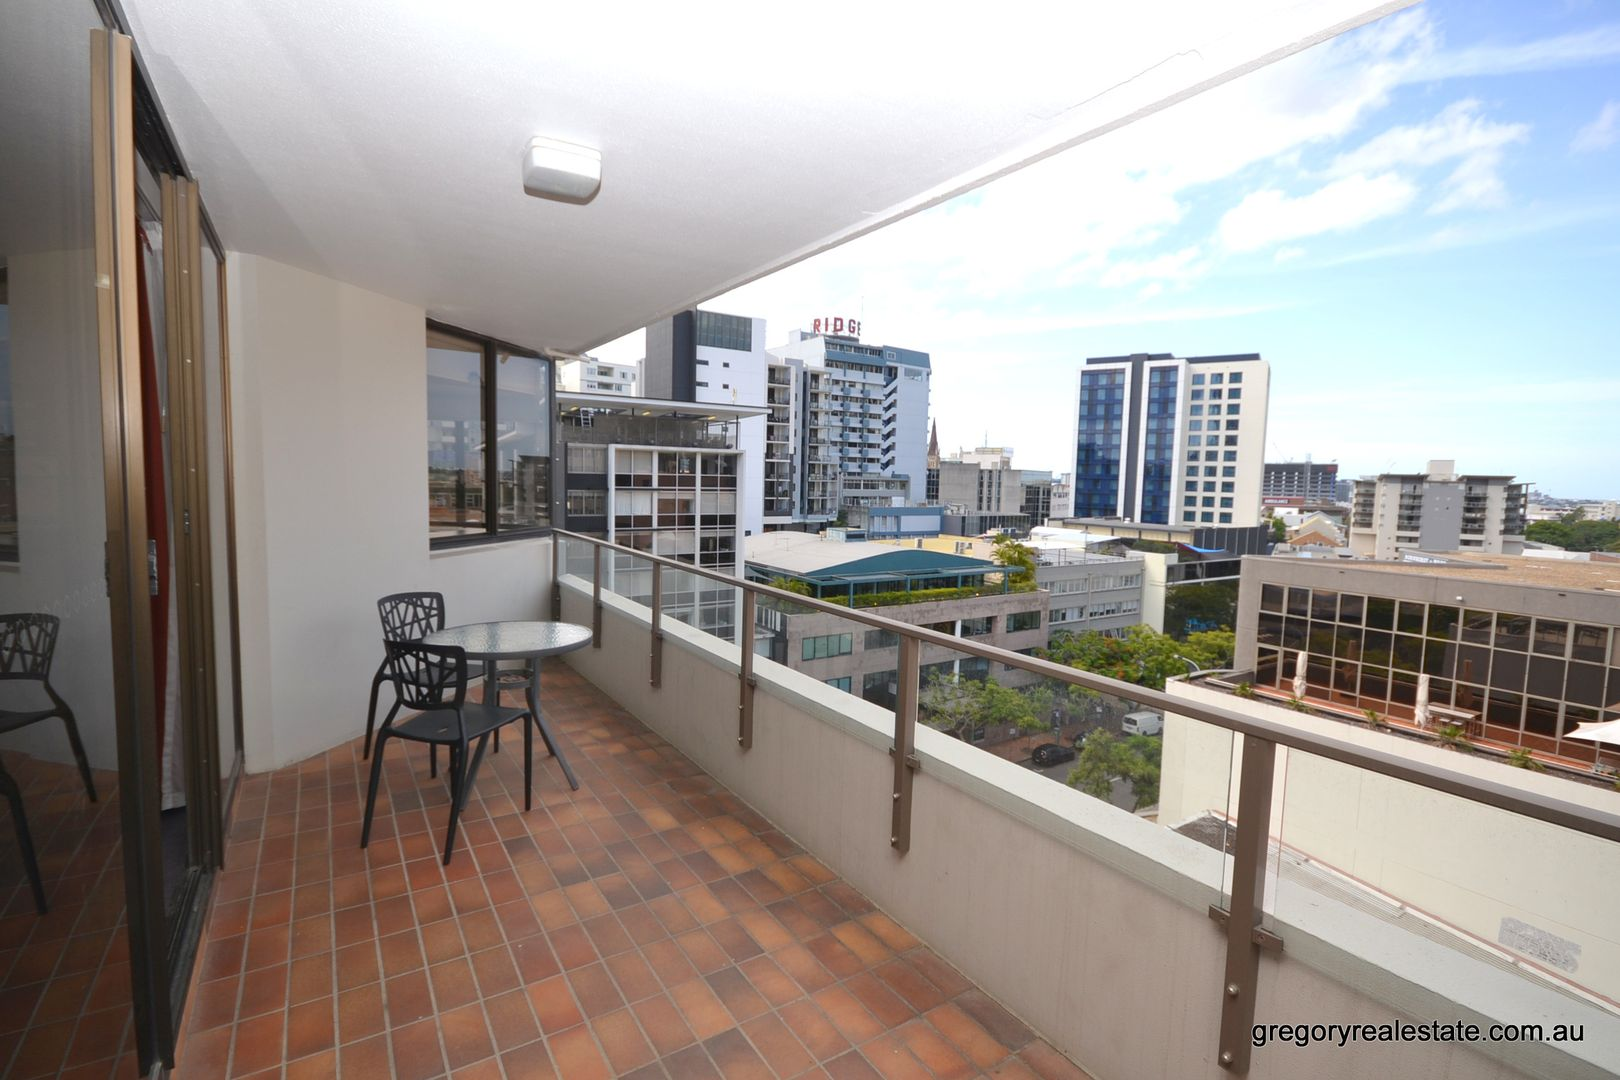 703/35 Astor Terrace, Spring Hill QLD 4000, Image 0